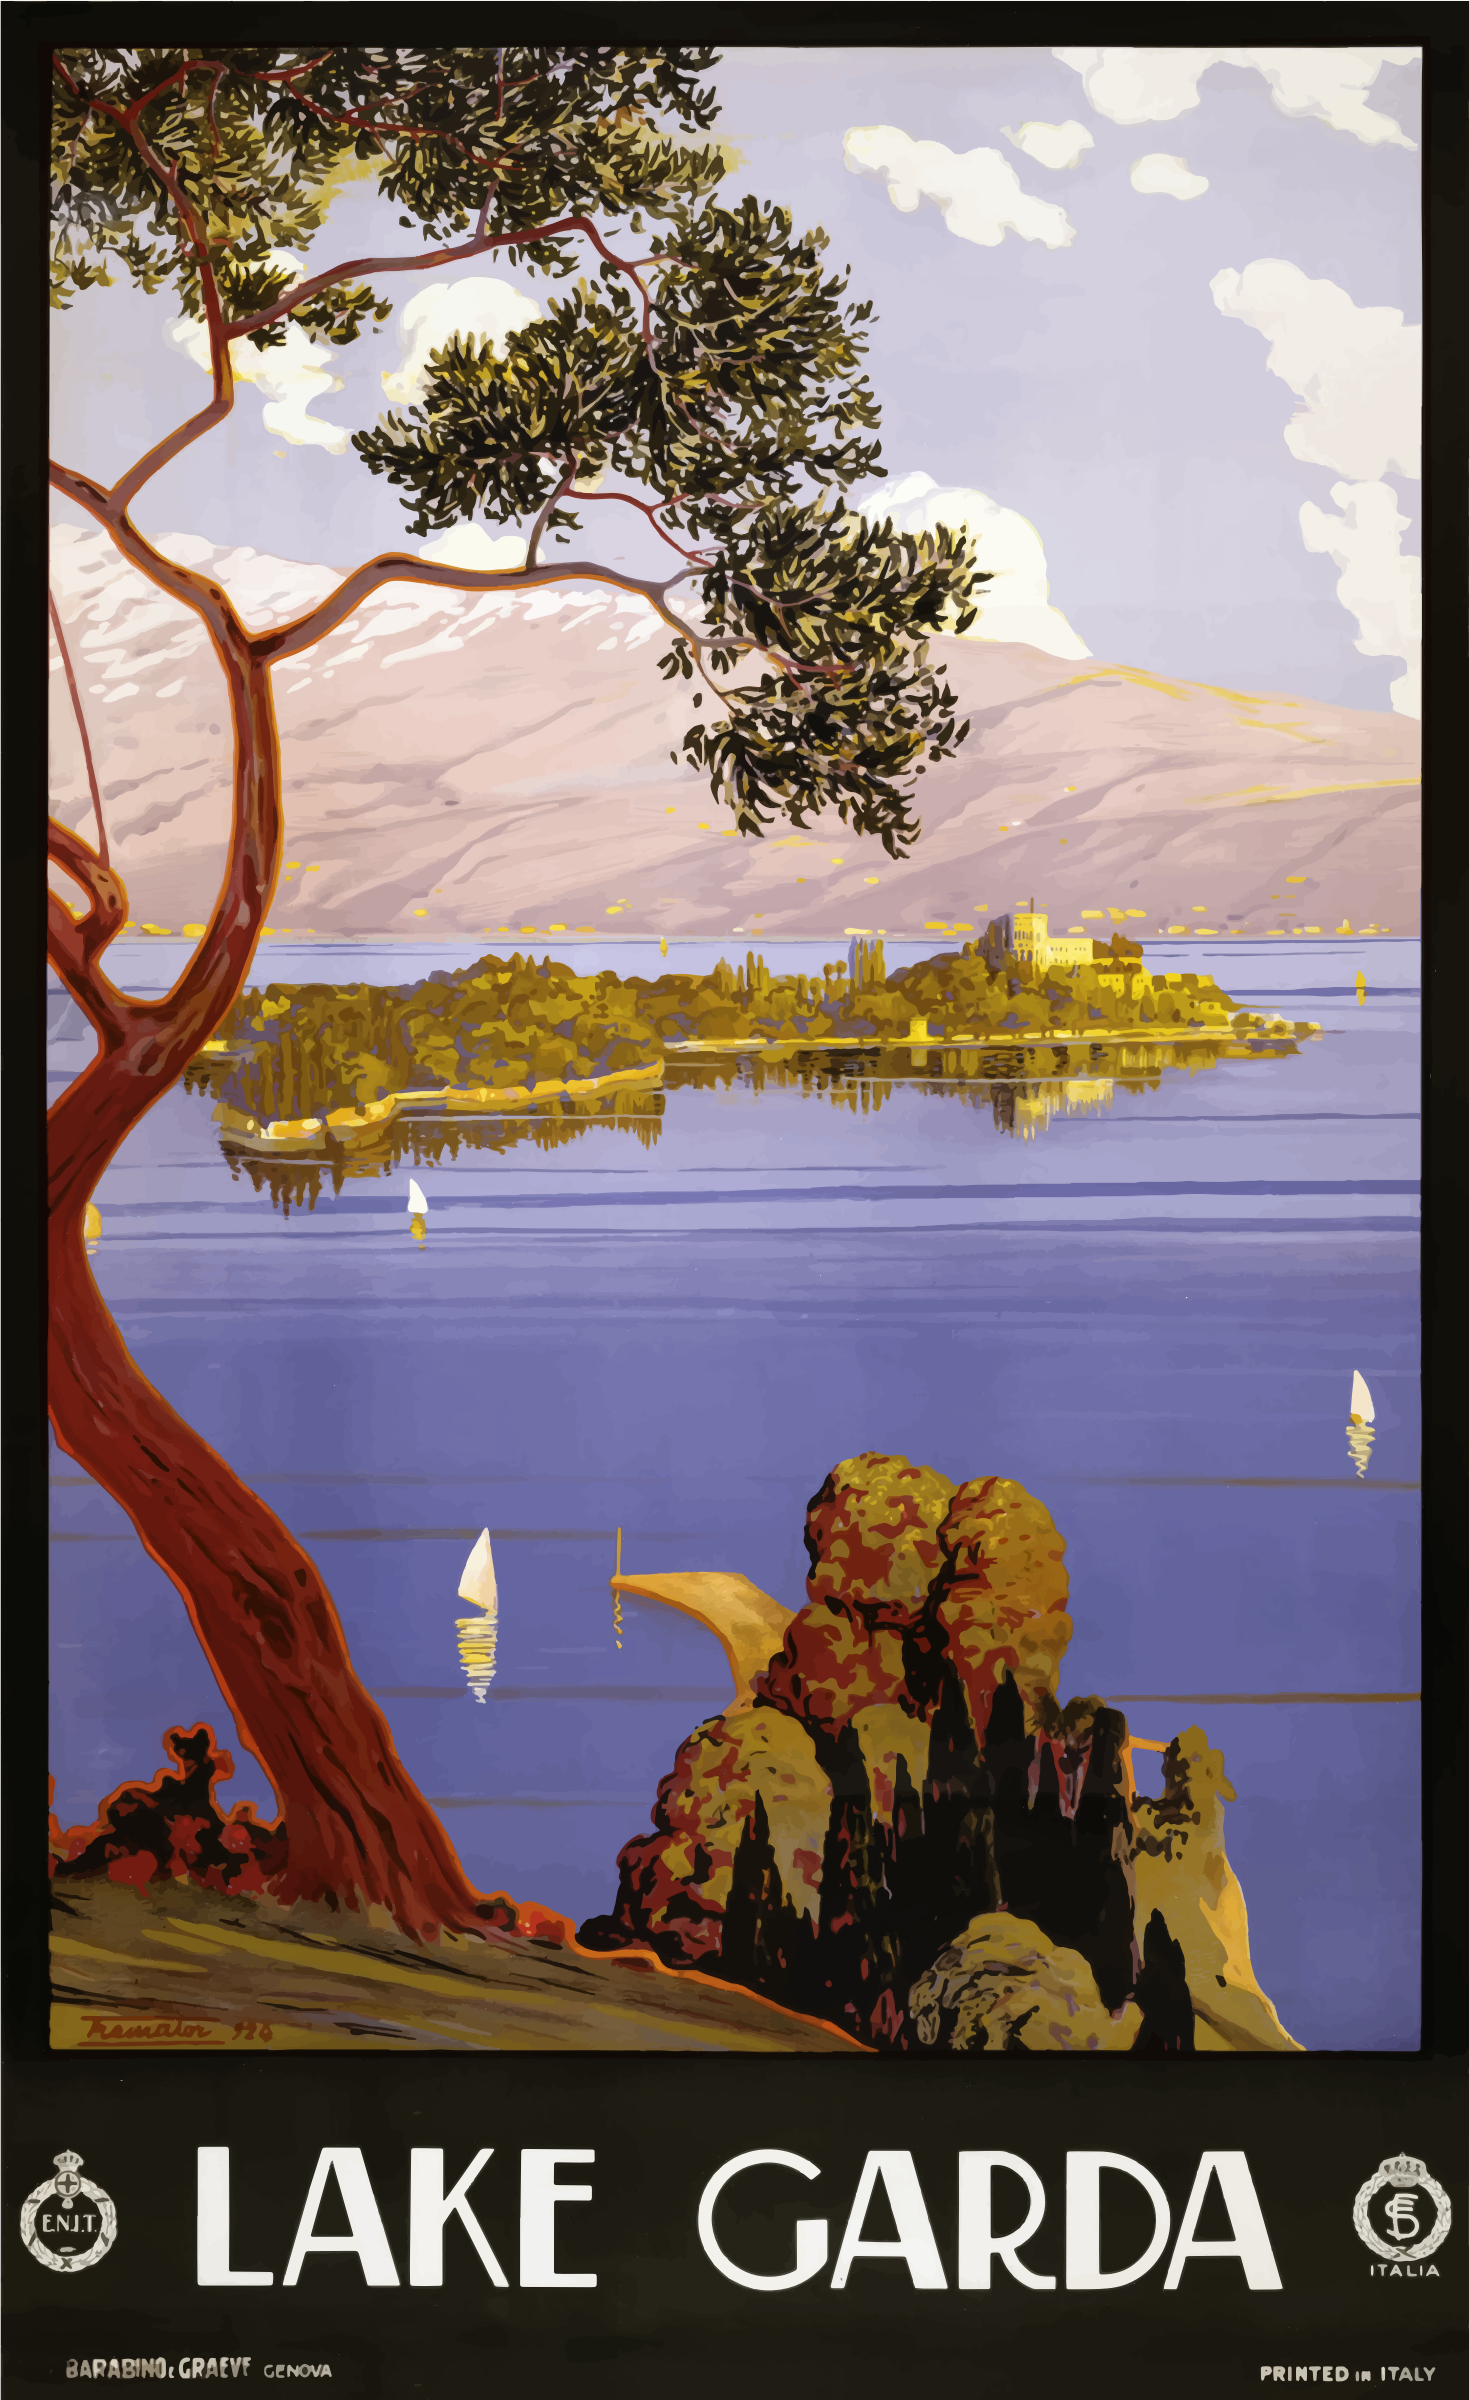 Clipart - Vintage Travel Poster Lake Garda Italy 1924